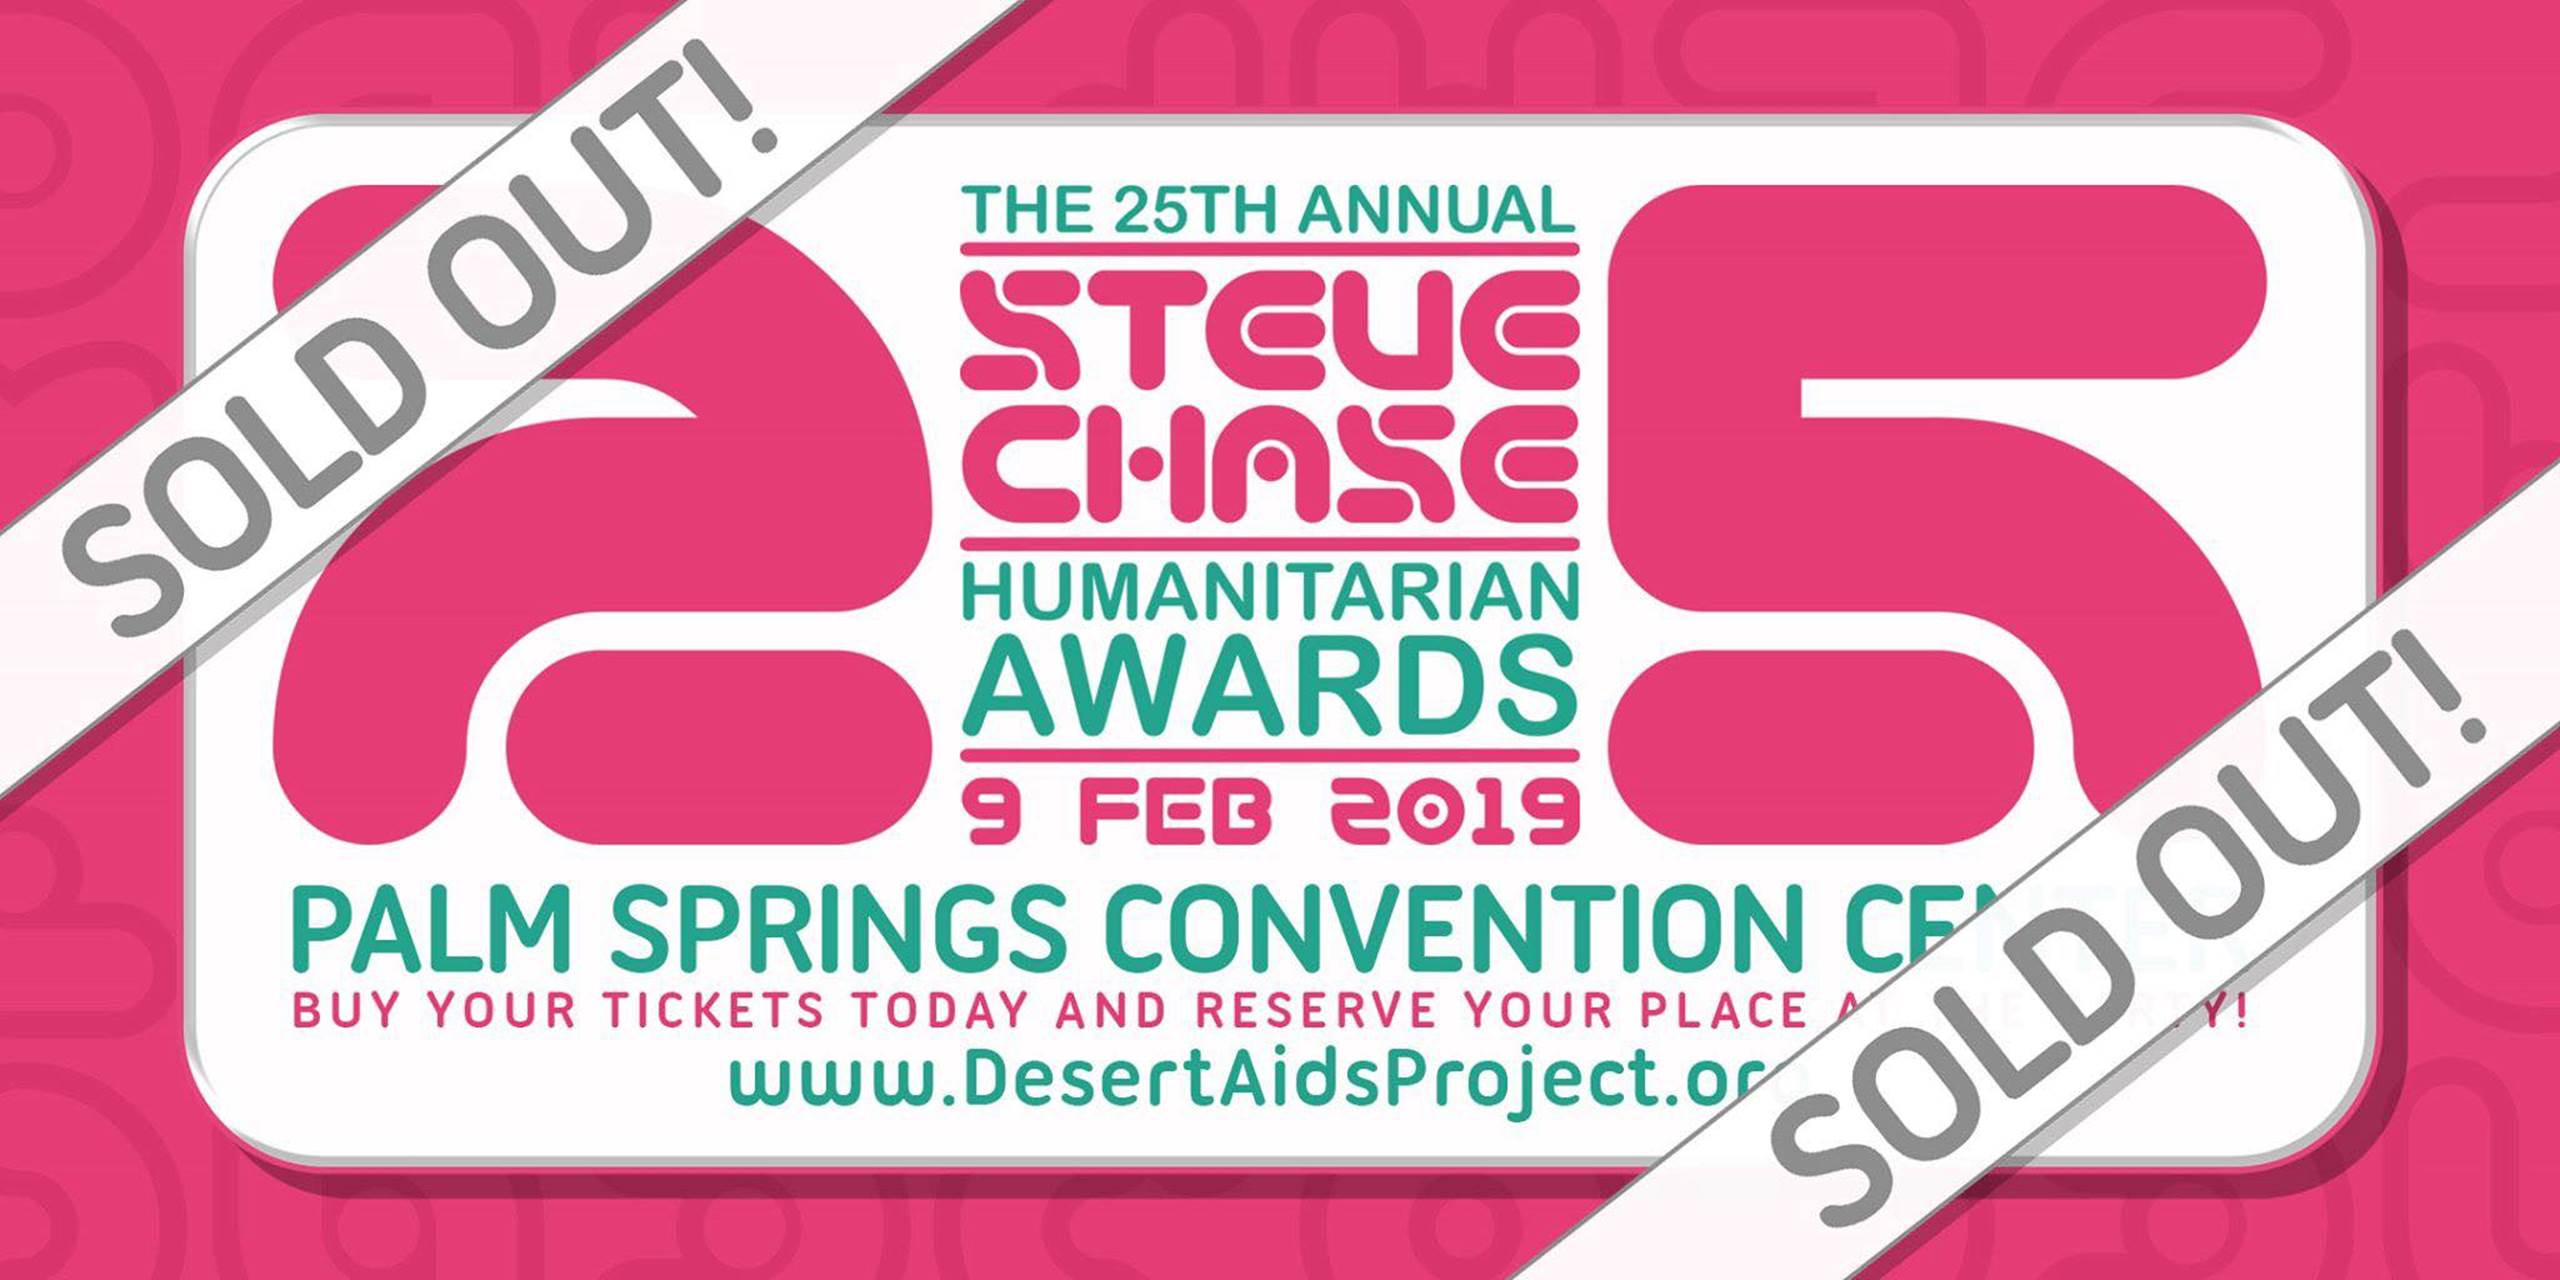 Chase Calendar February 2019 25th Annual Steve Chase Humanitarian Awards   Desert AIDS Project